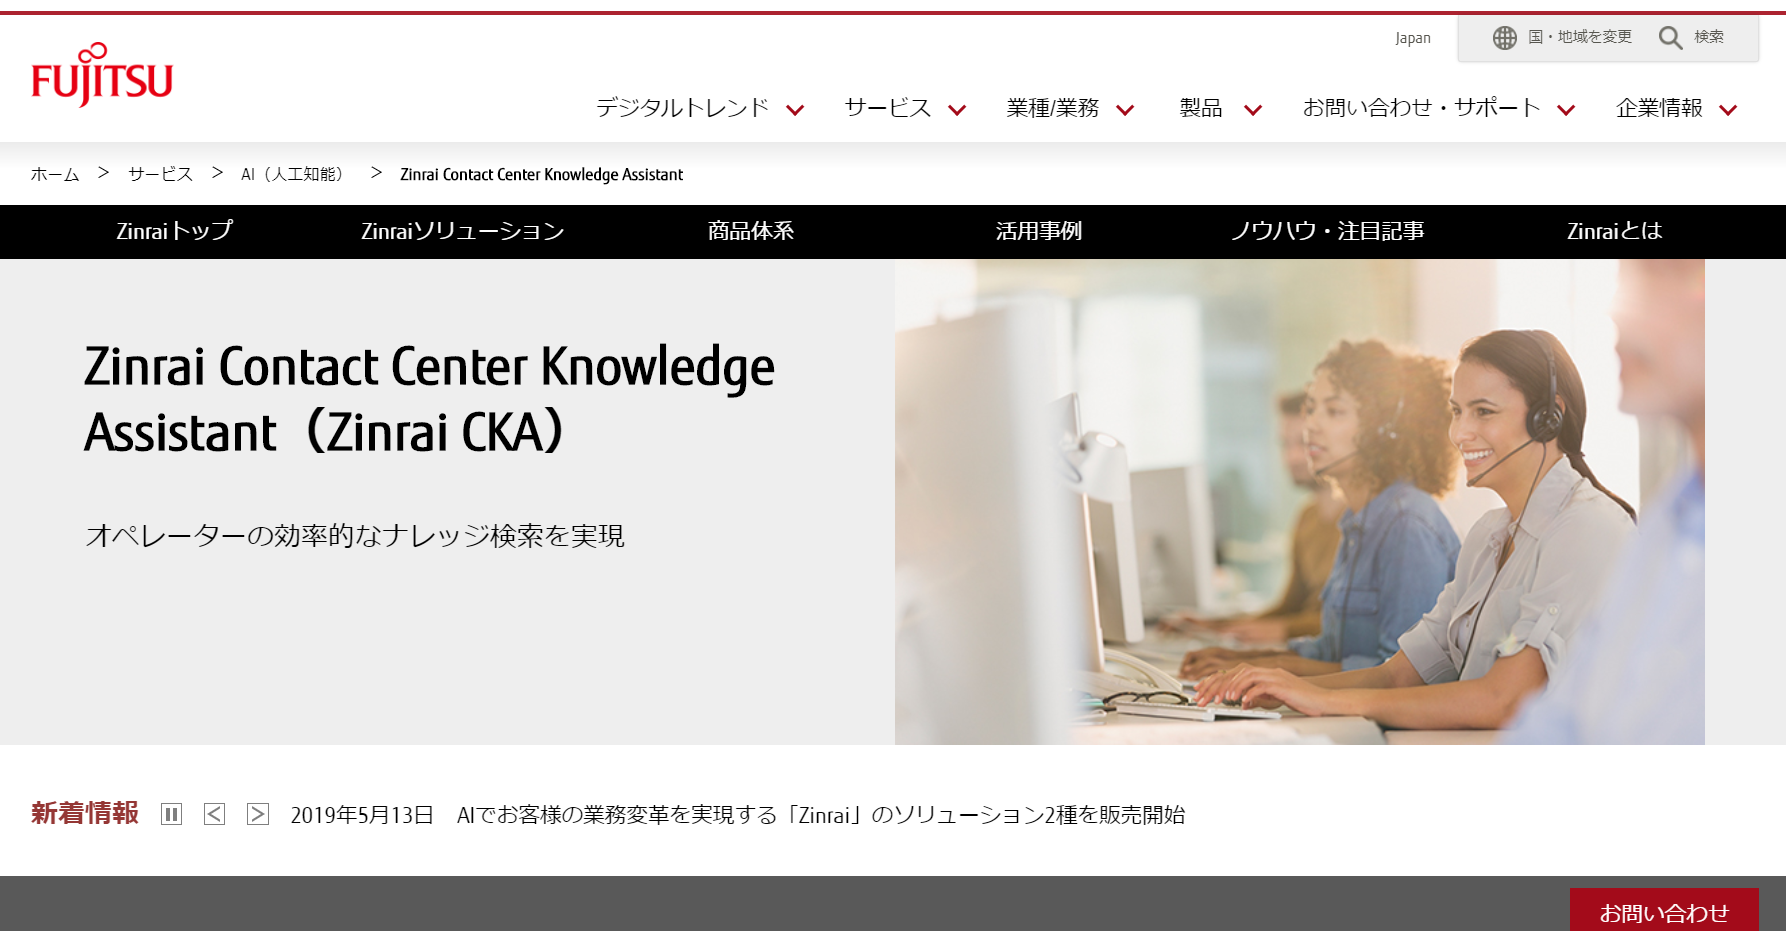 Zinrai Contact Center Knowledge Assistant(Zinrai CKA)